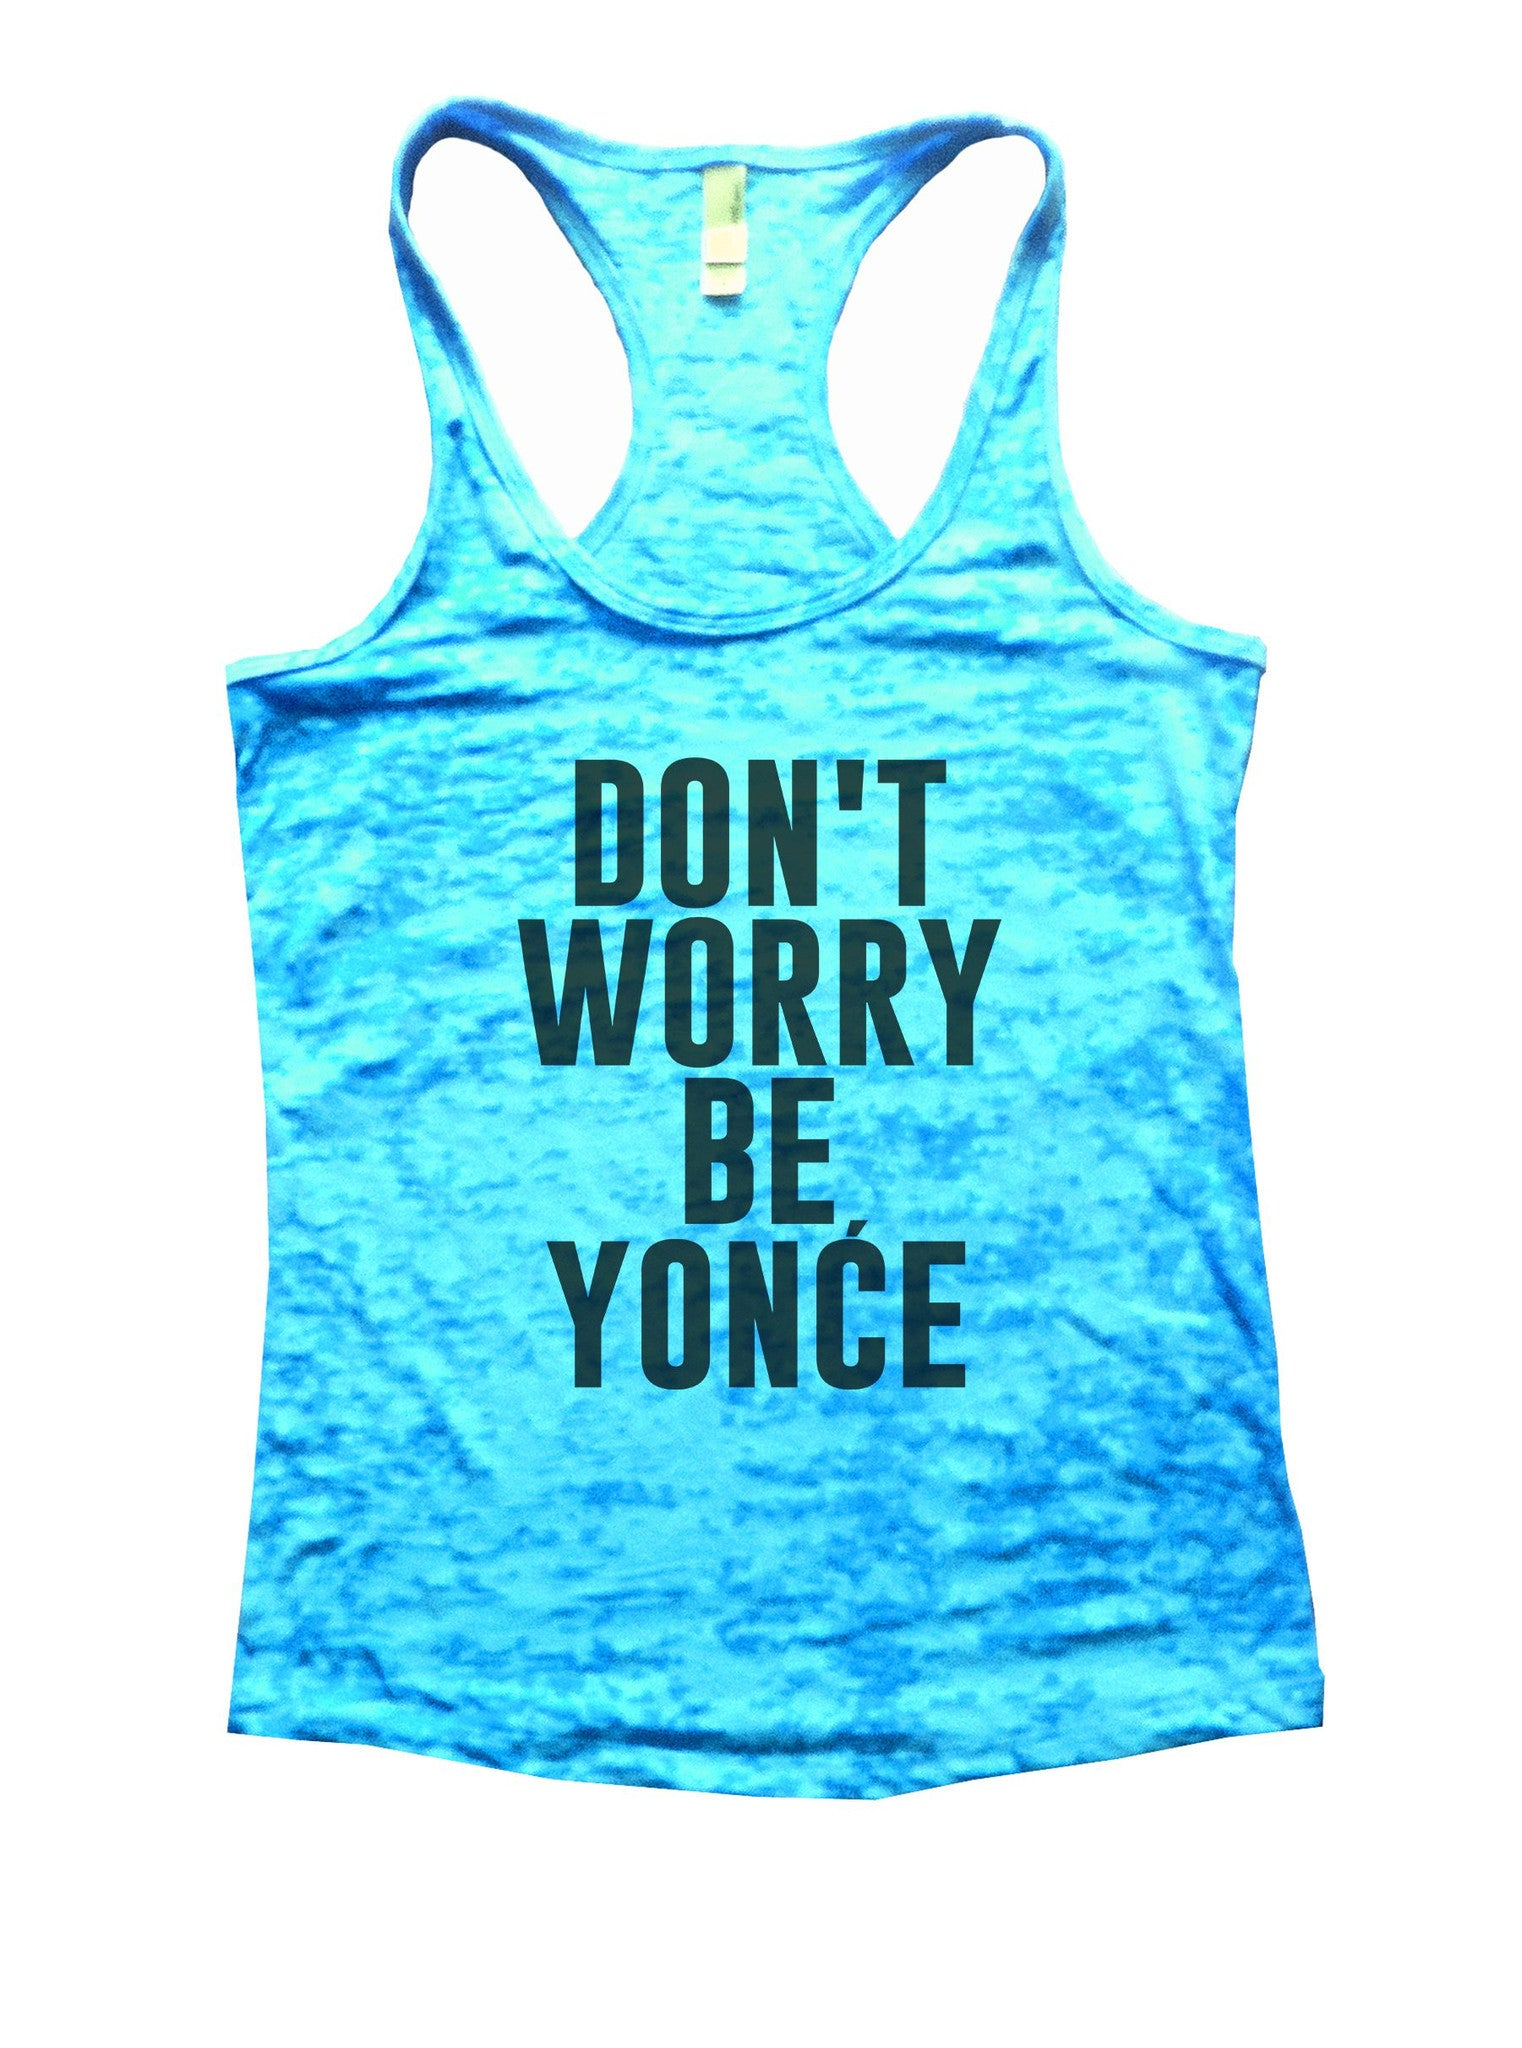 Don't Worry Be Yonce Burnout Tank Top By BurnoutTankTops.com - 934 - Funny Shirts Tank Tops Burnouts and Triblends  - 1